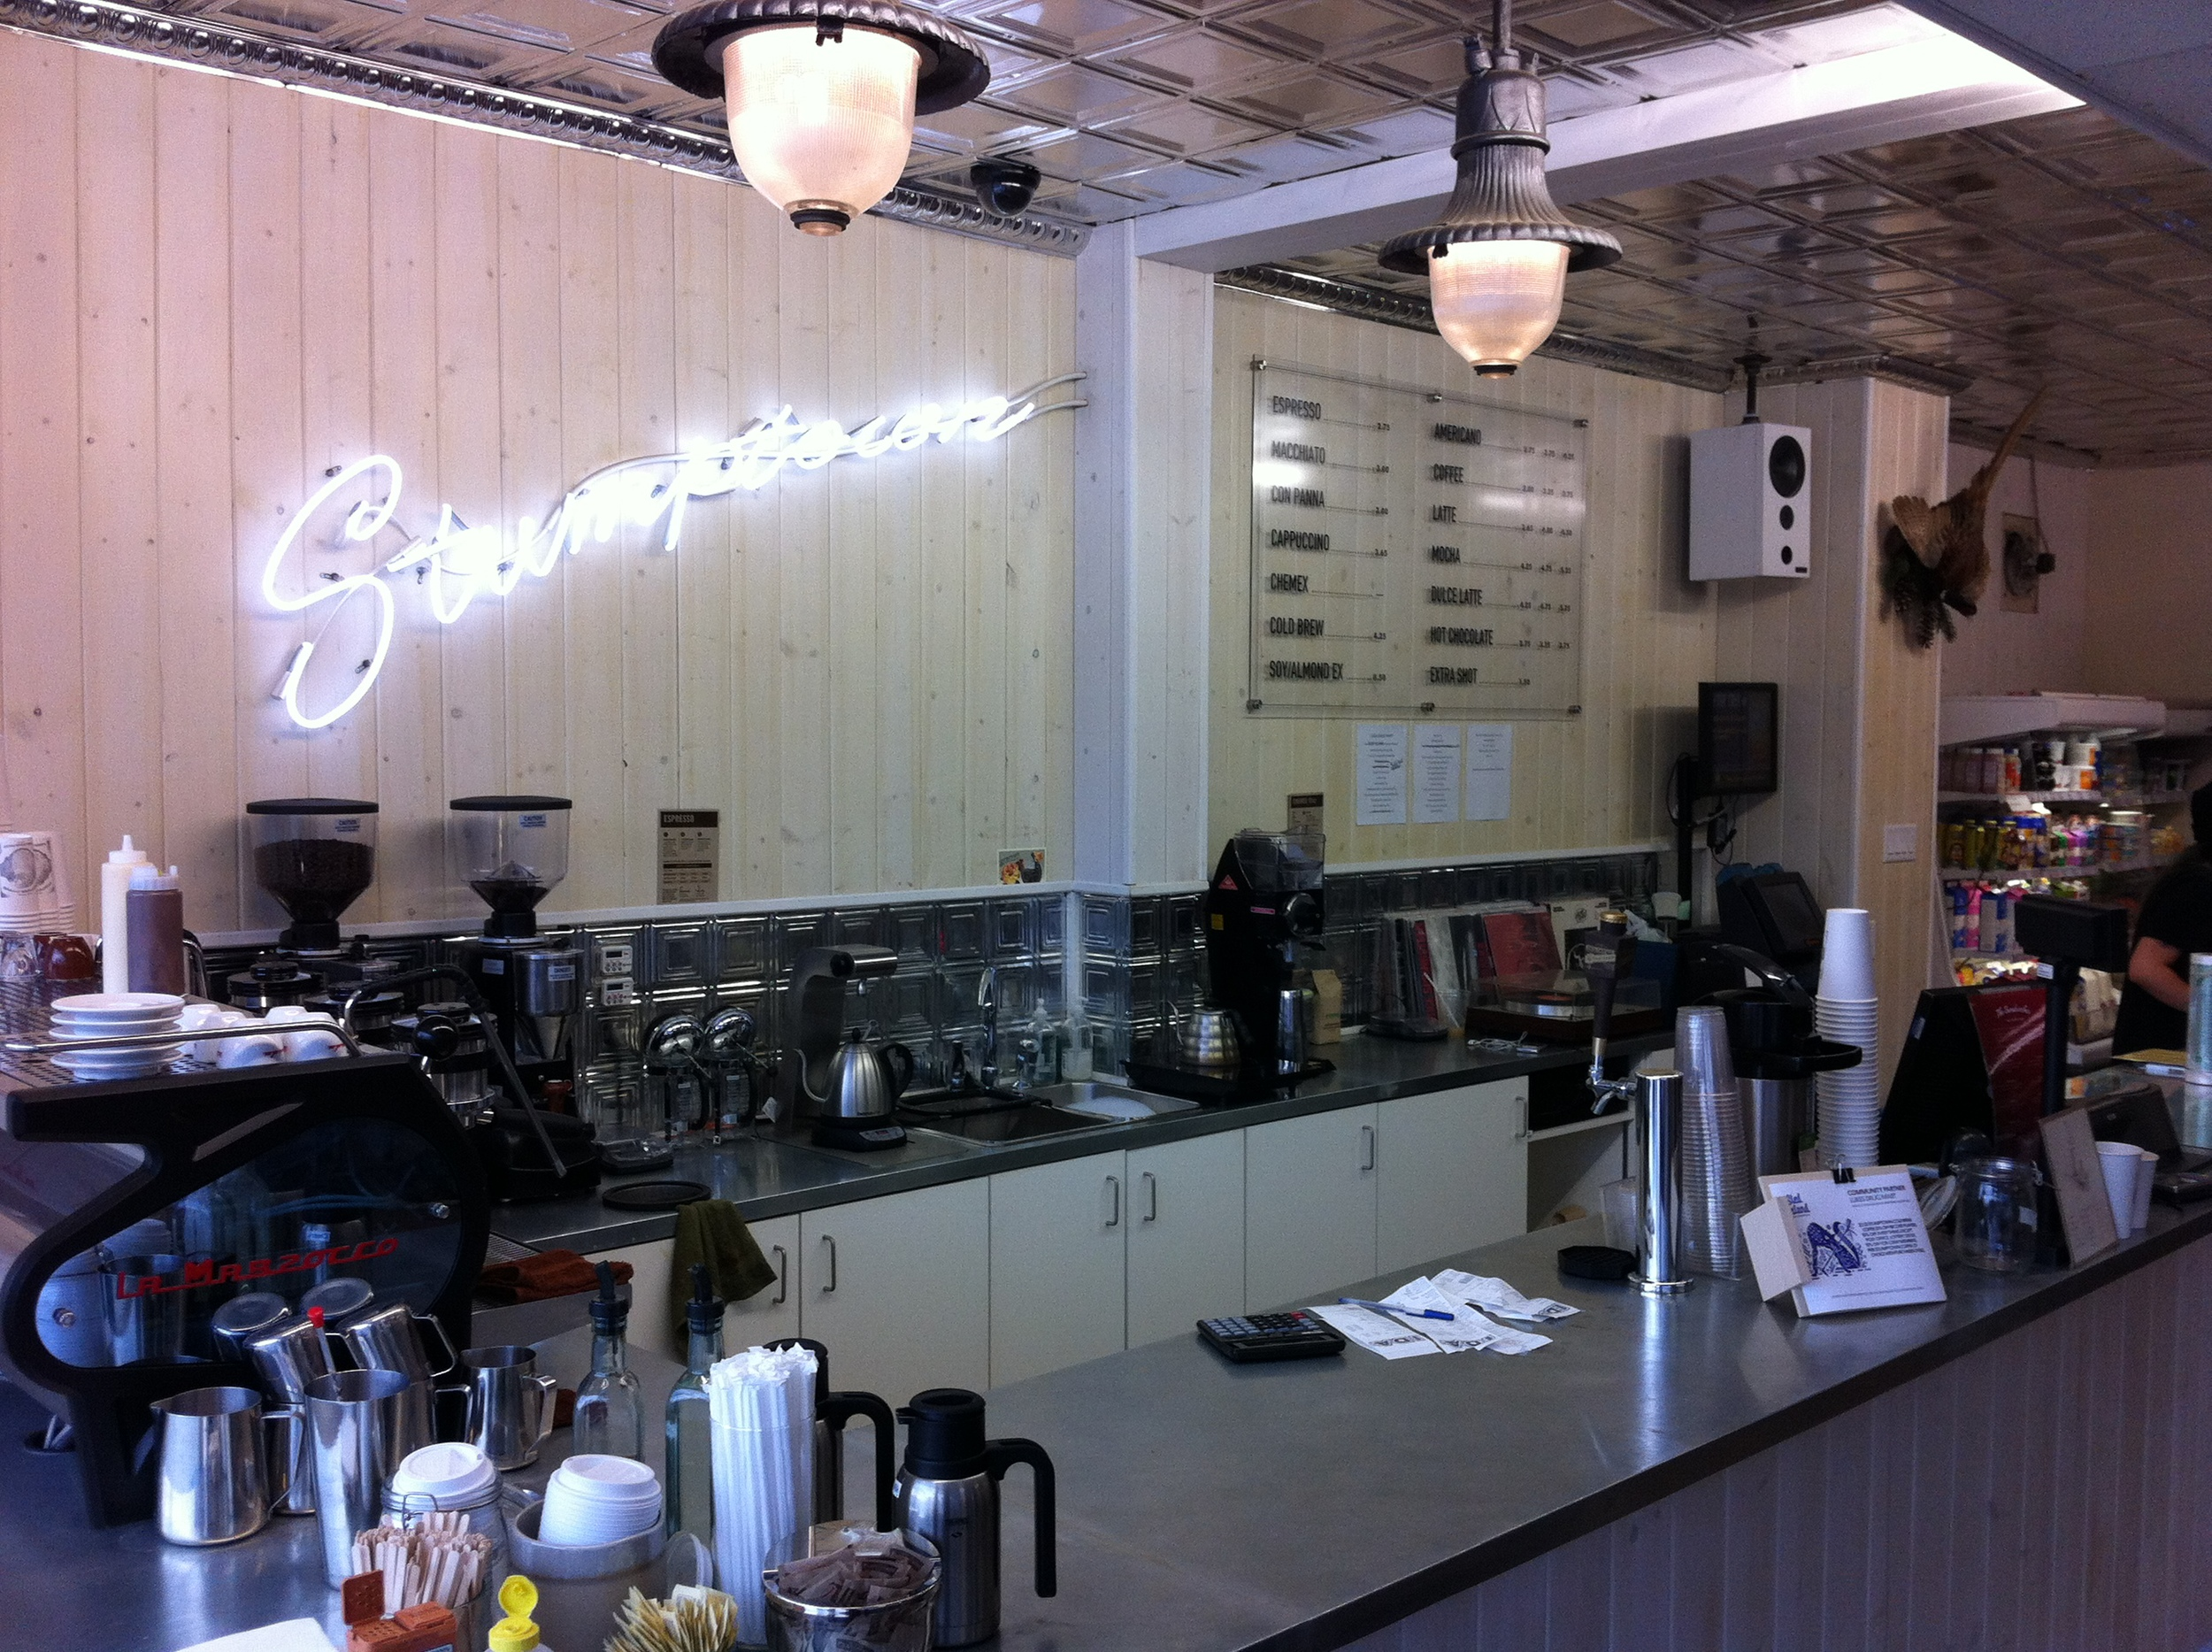 Portland's Stumptown coffee now available in Calgary. Wonder when Phil & Sebastians will open in Portland or maybe Cafe Rosso or one of the many other Calgary based cafes / roasters.